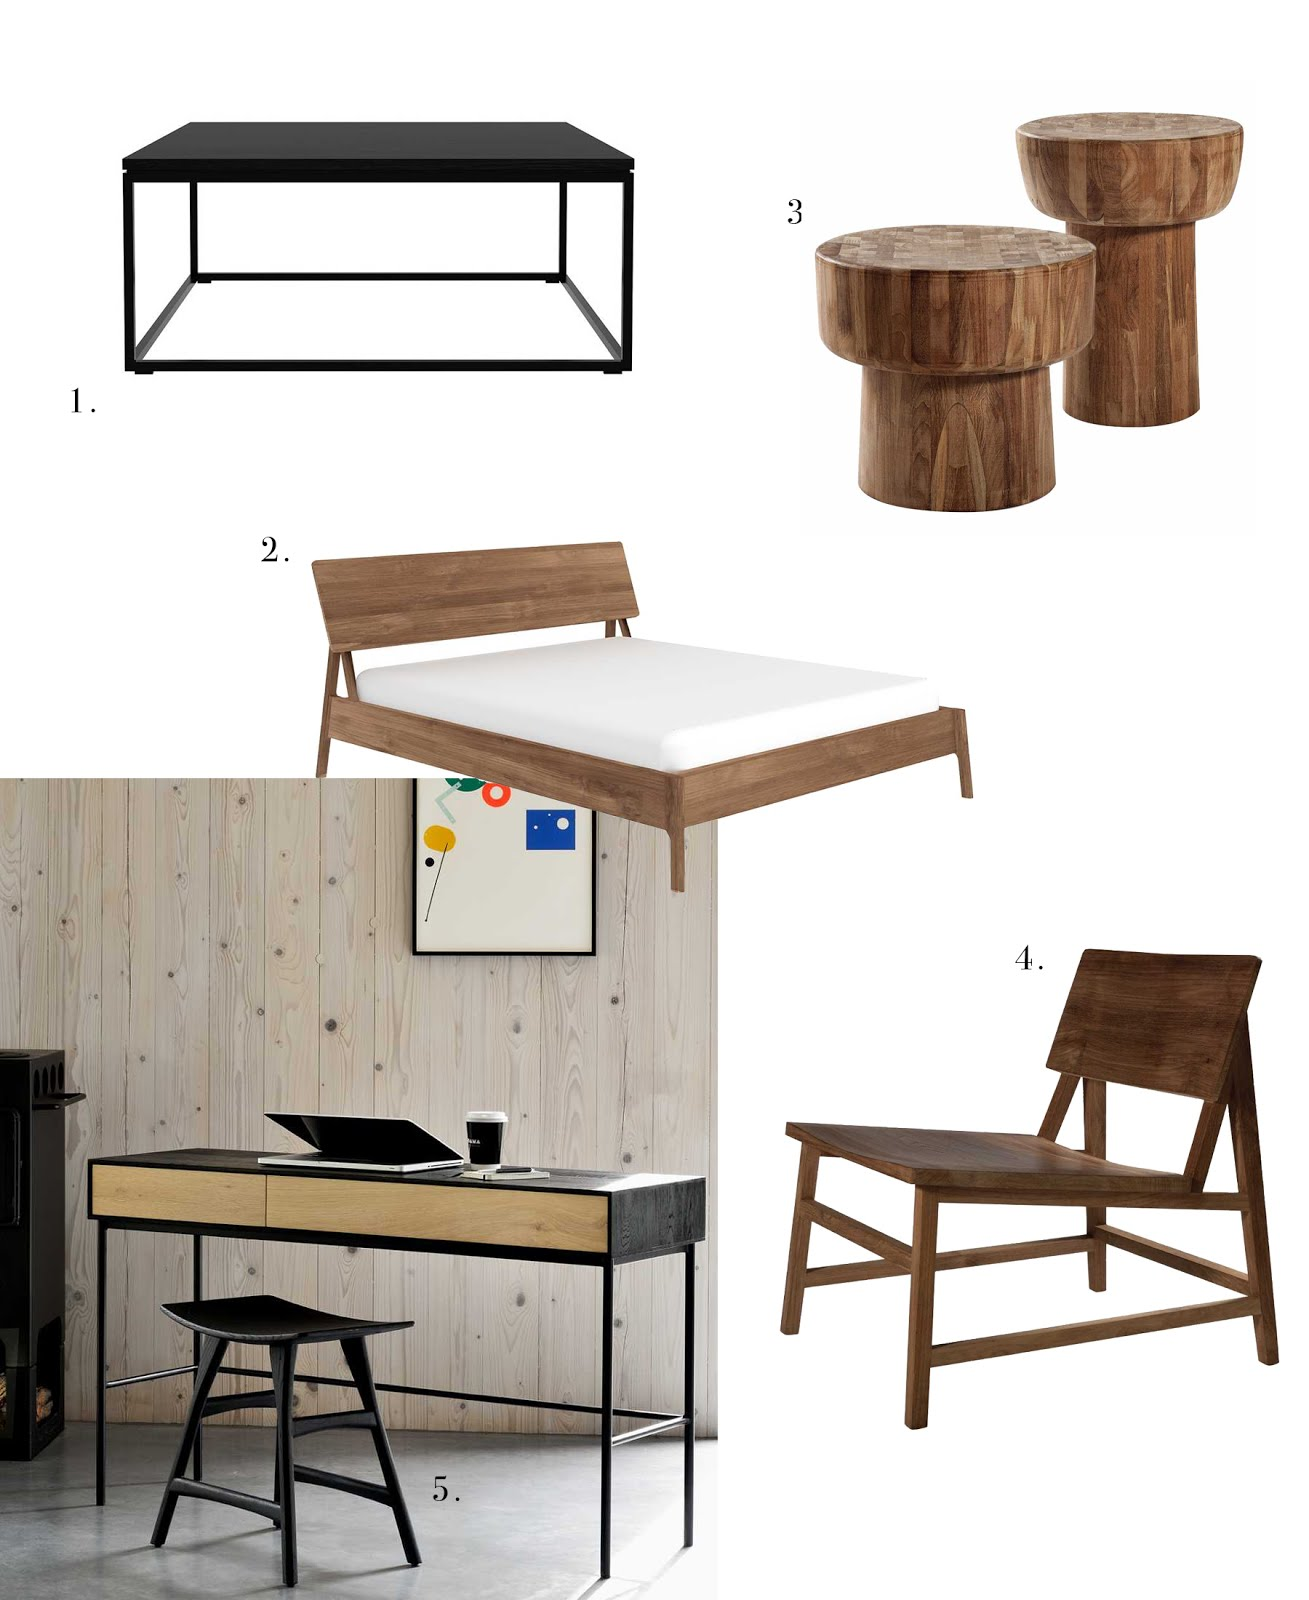 Ethnicraft, mister design, cone hanglamp, furniture, wood, solid, massief hout, teak, walnoot, eik, meubels, osso kruk, thin salontafel, N2